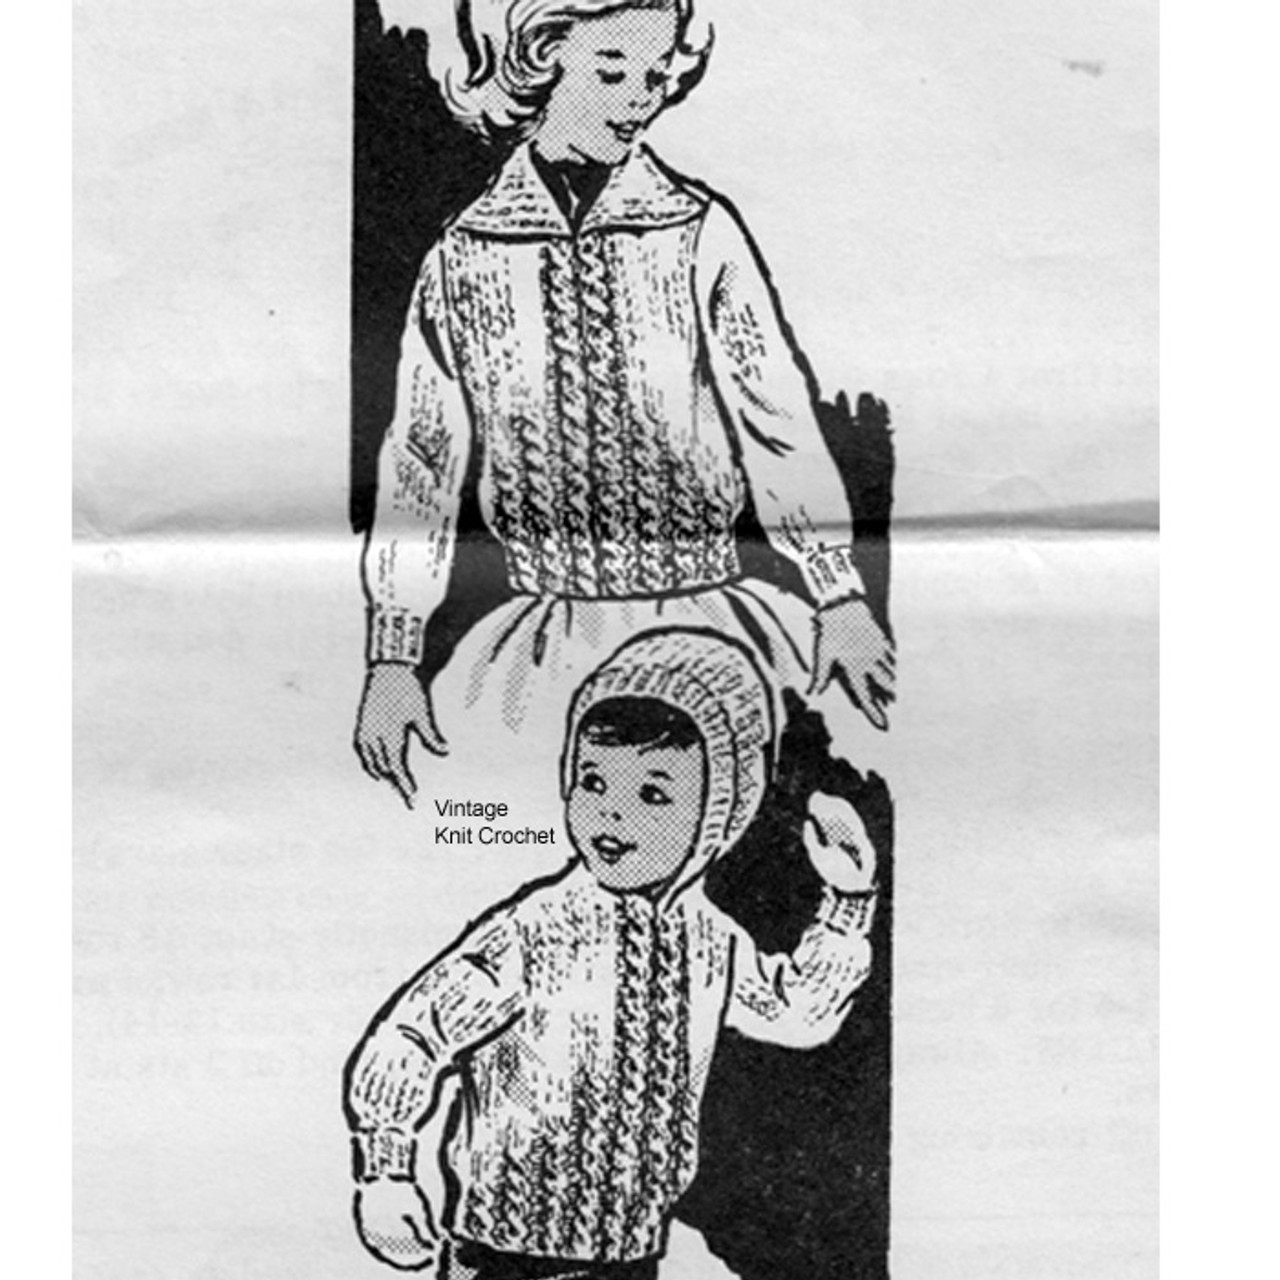 Mail Order Knitting Pattern for Childs Coat on Big Needles